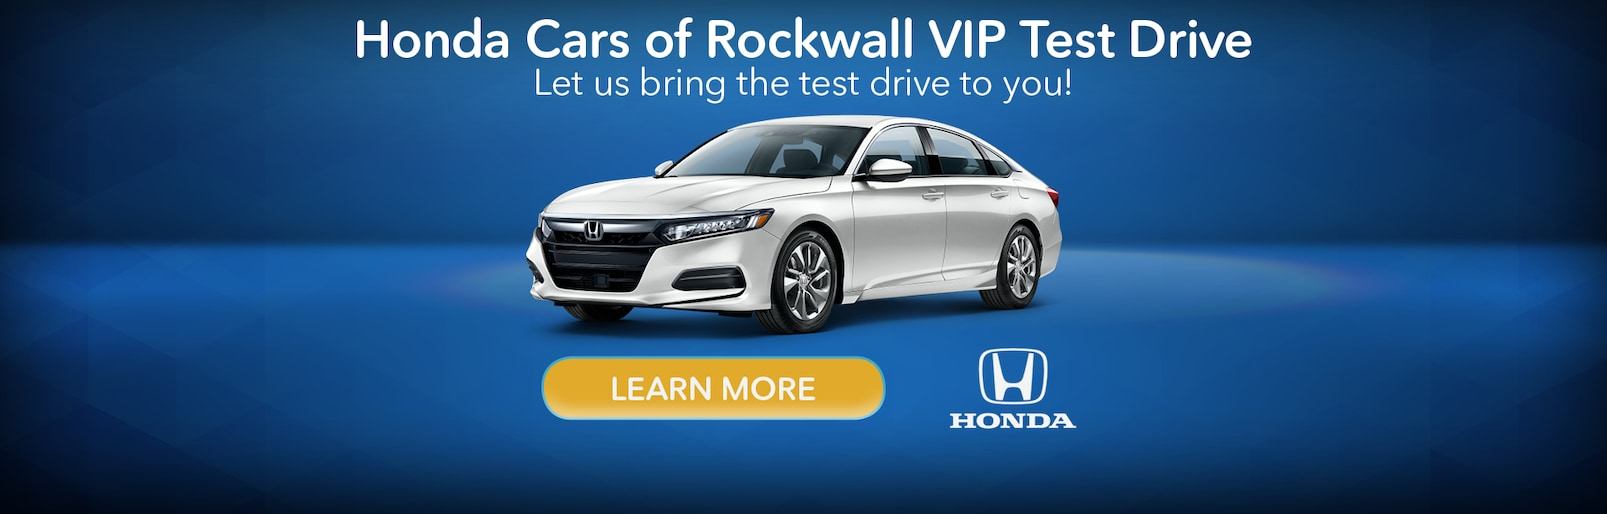 New & Used Honda Dealer Rockwall TX | Honda Cars of Rockwall